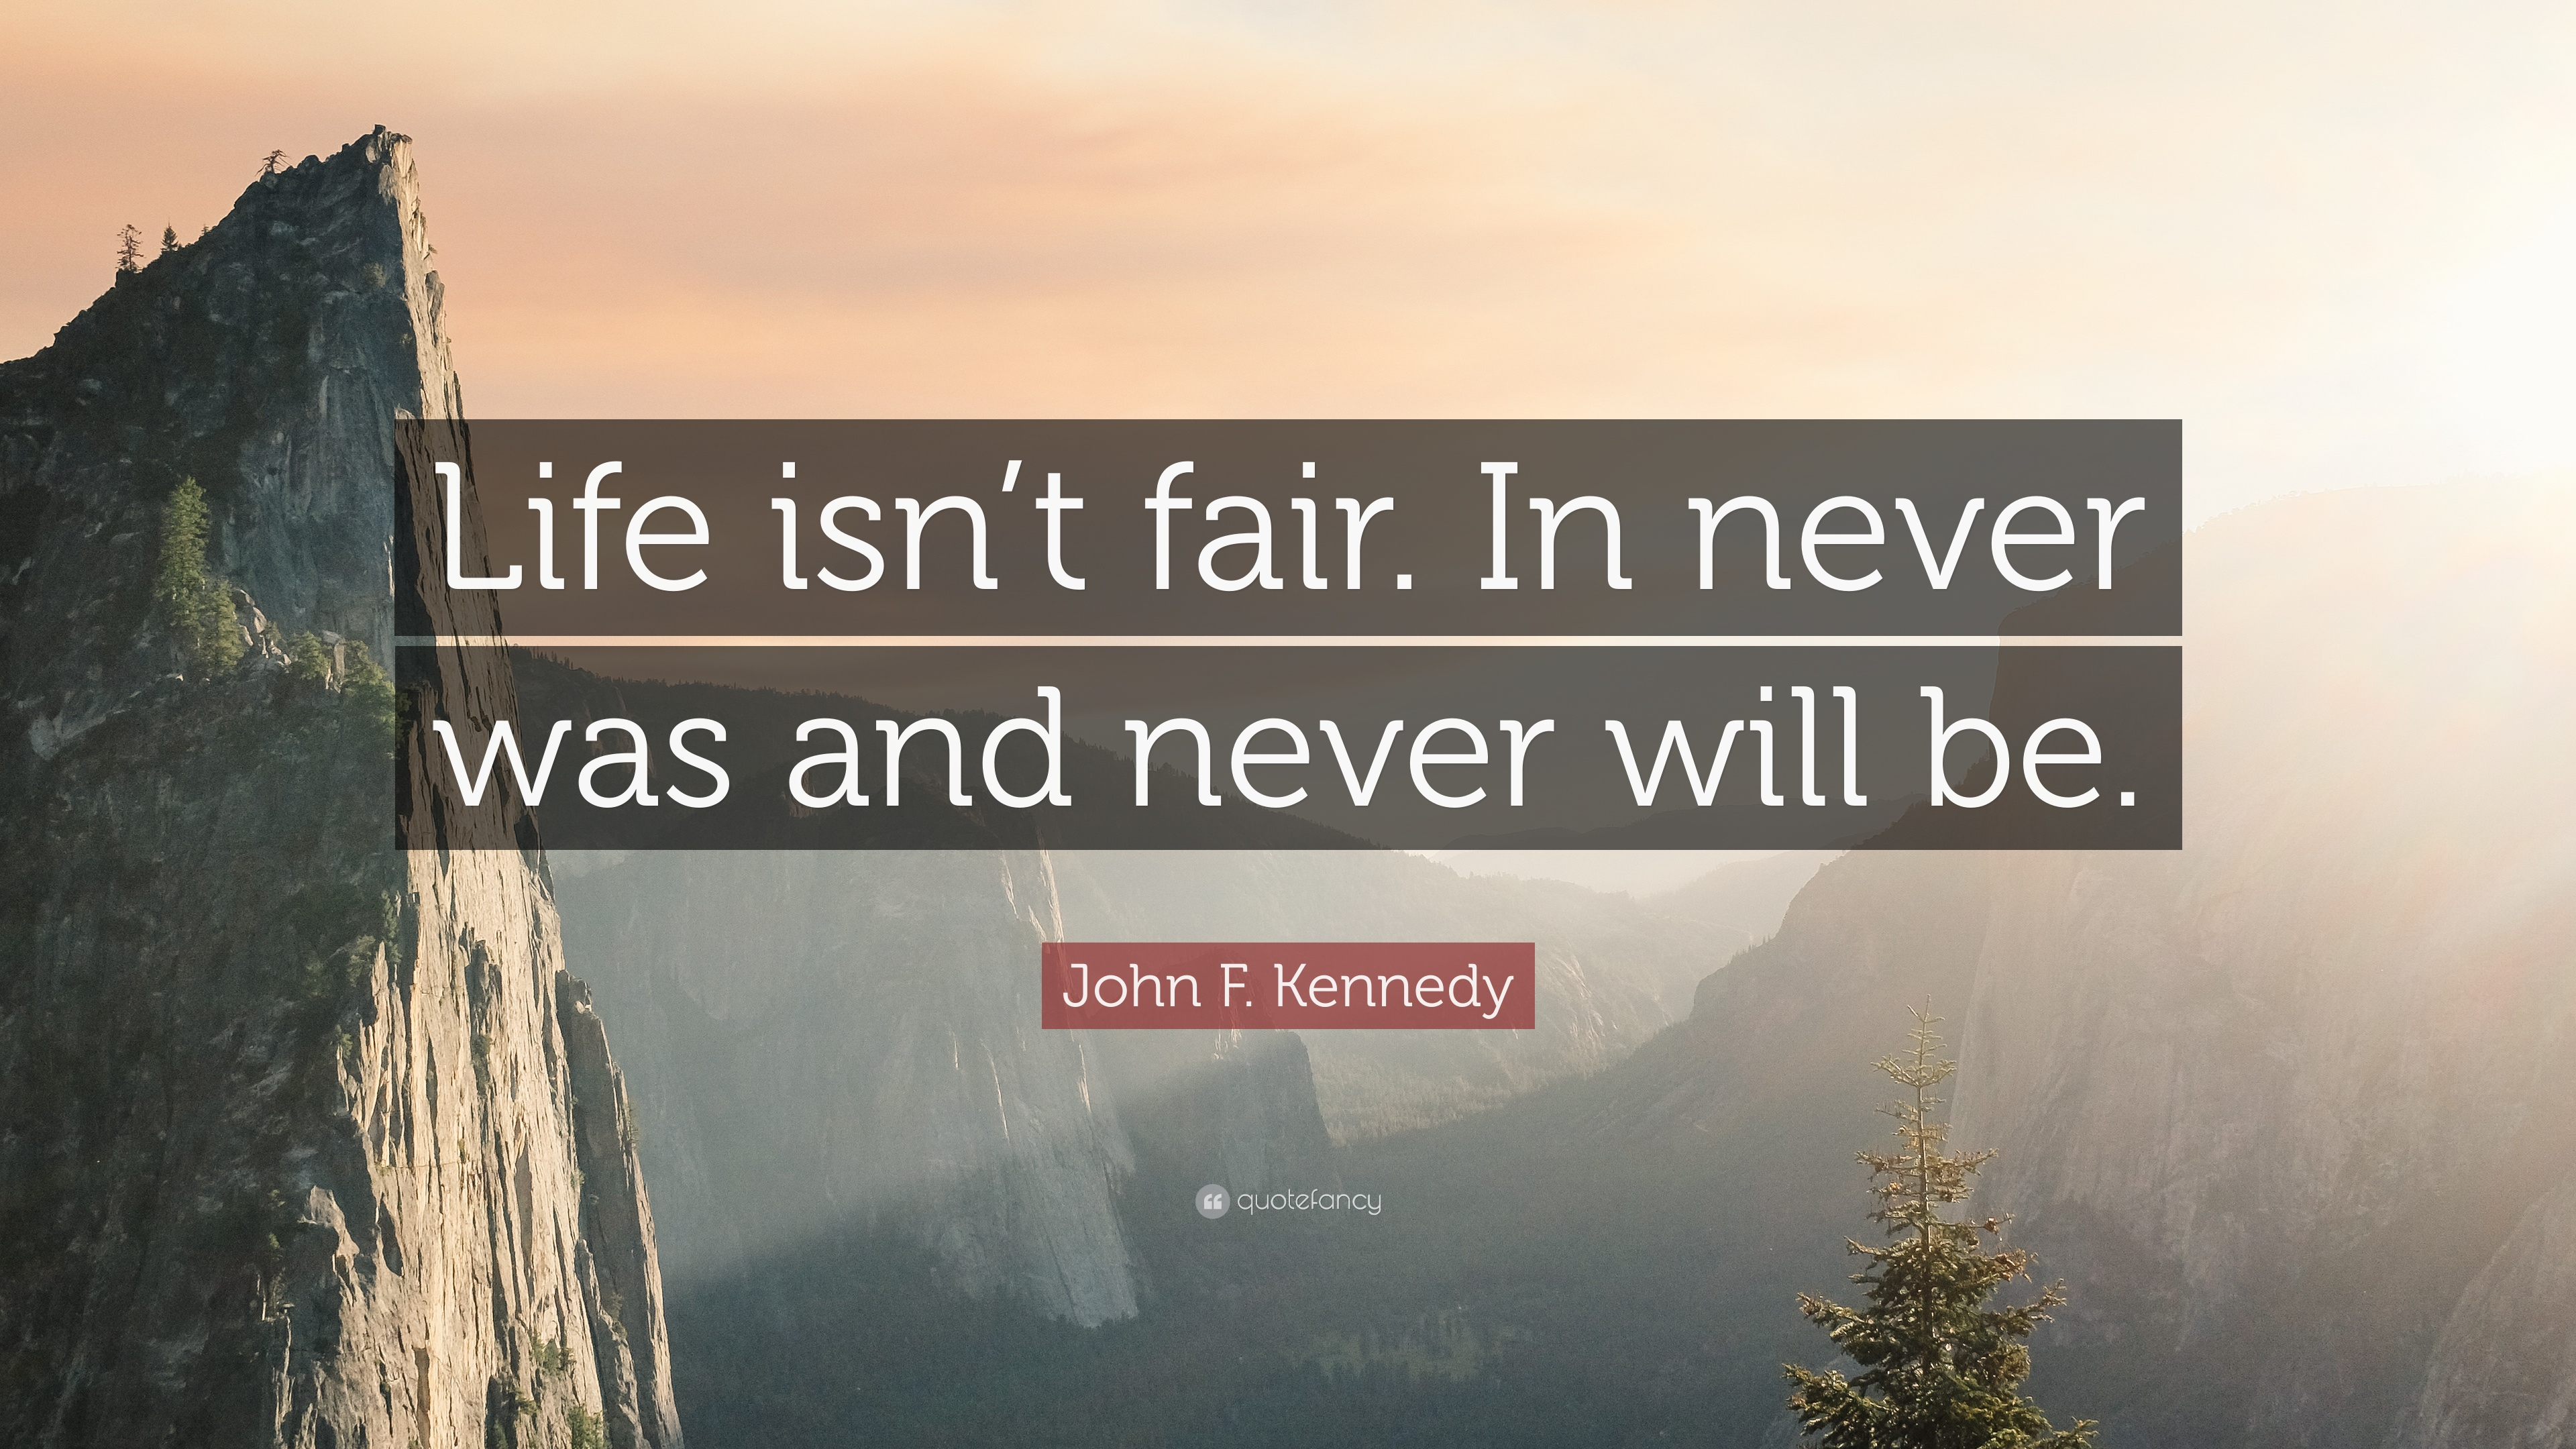 John F Kennedy Quote Life Isnt Fair In Never Was And Never Will